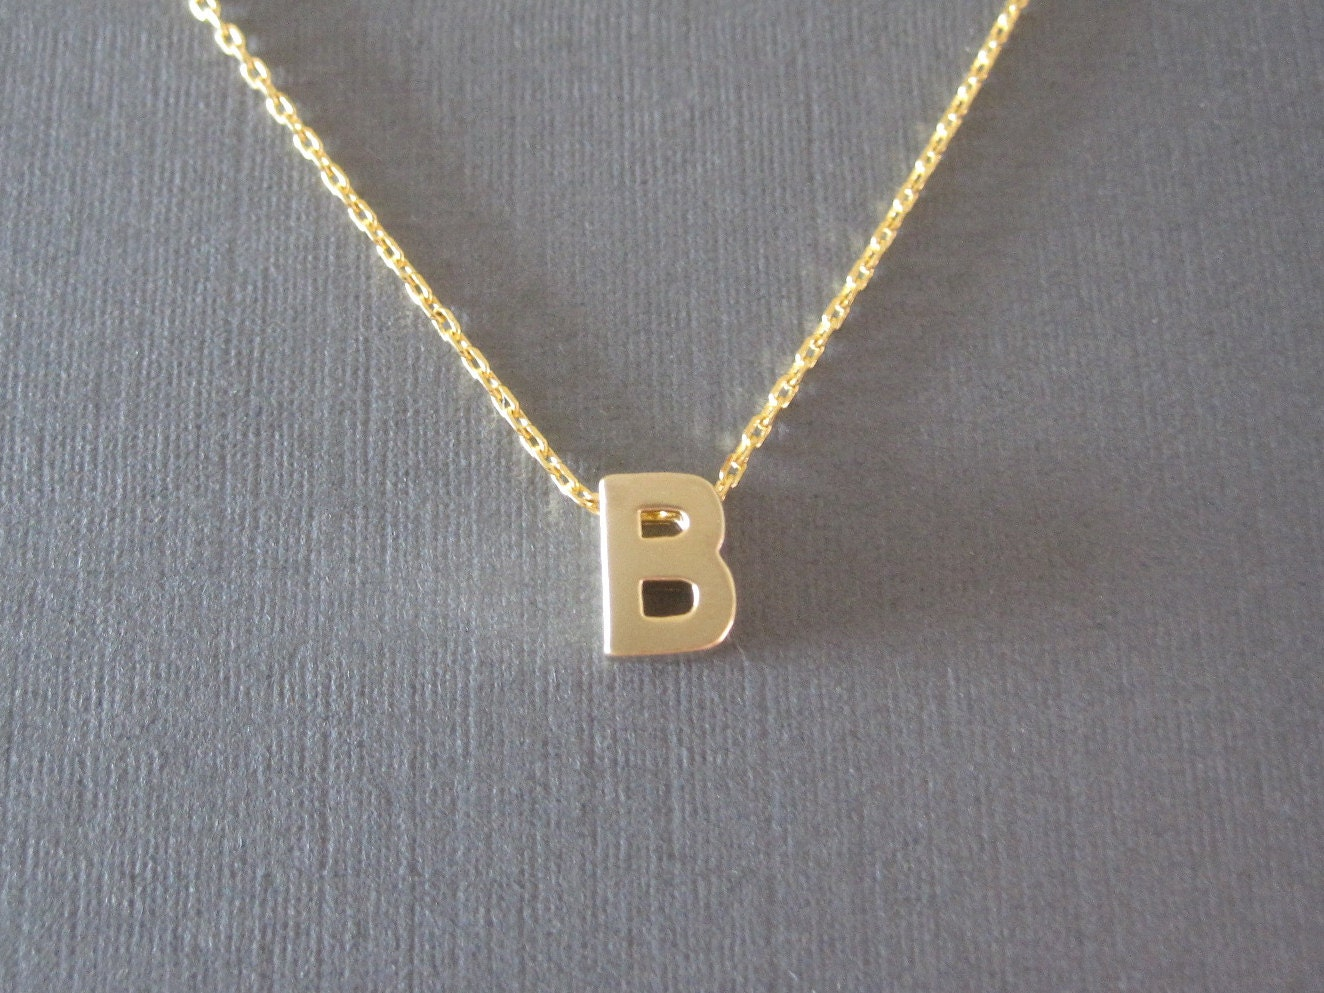 min r personalized ketting product jewelry letter necklace gold lightbox